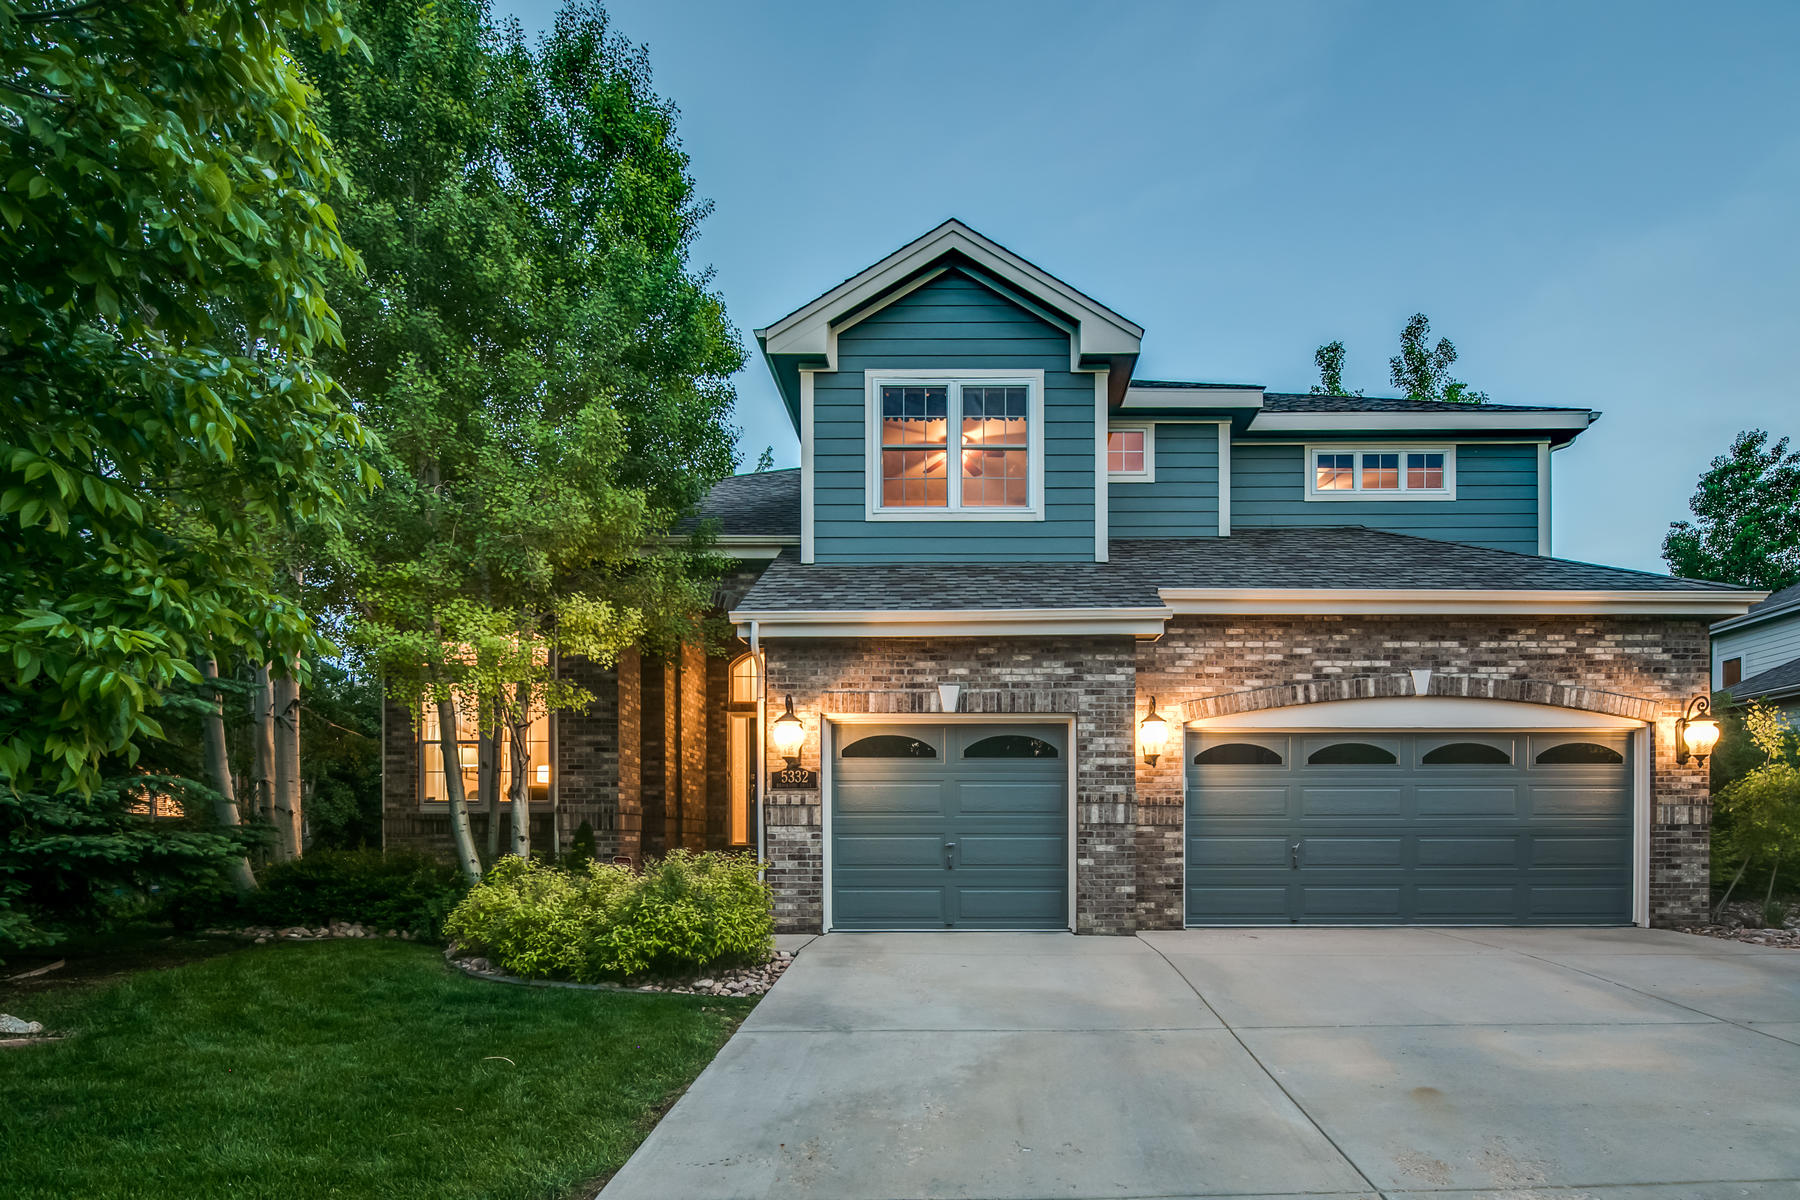 Single Family Homes for Active at Light, Bright And Full Of Upgrades 5332 Brookside Dr Broomfield, Colorado 80020 United States